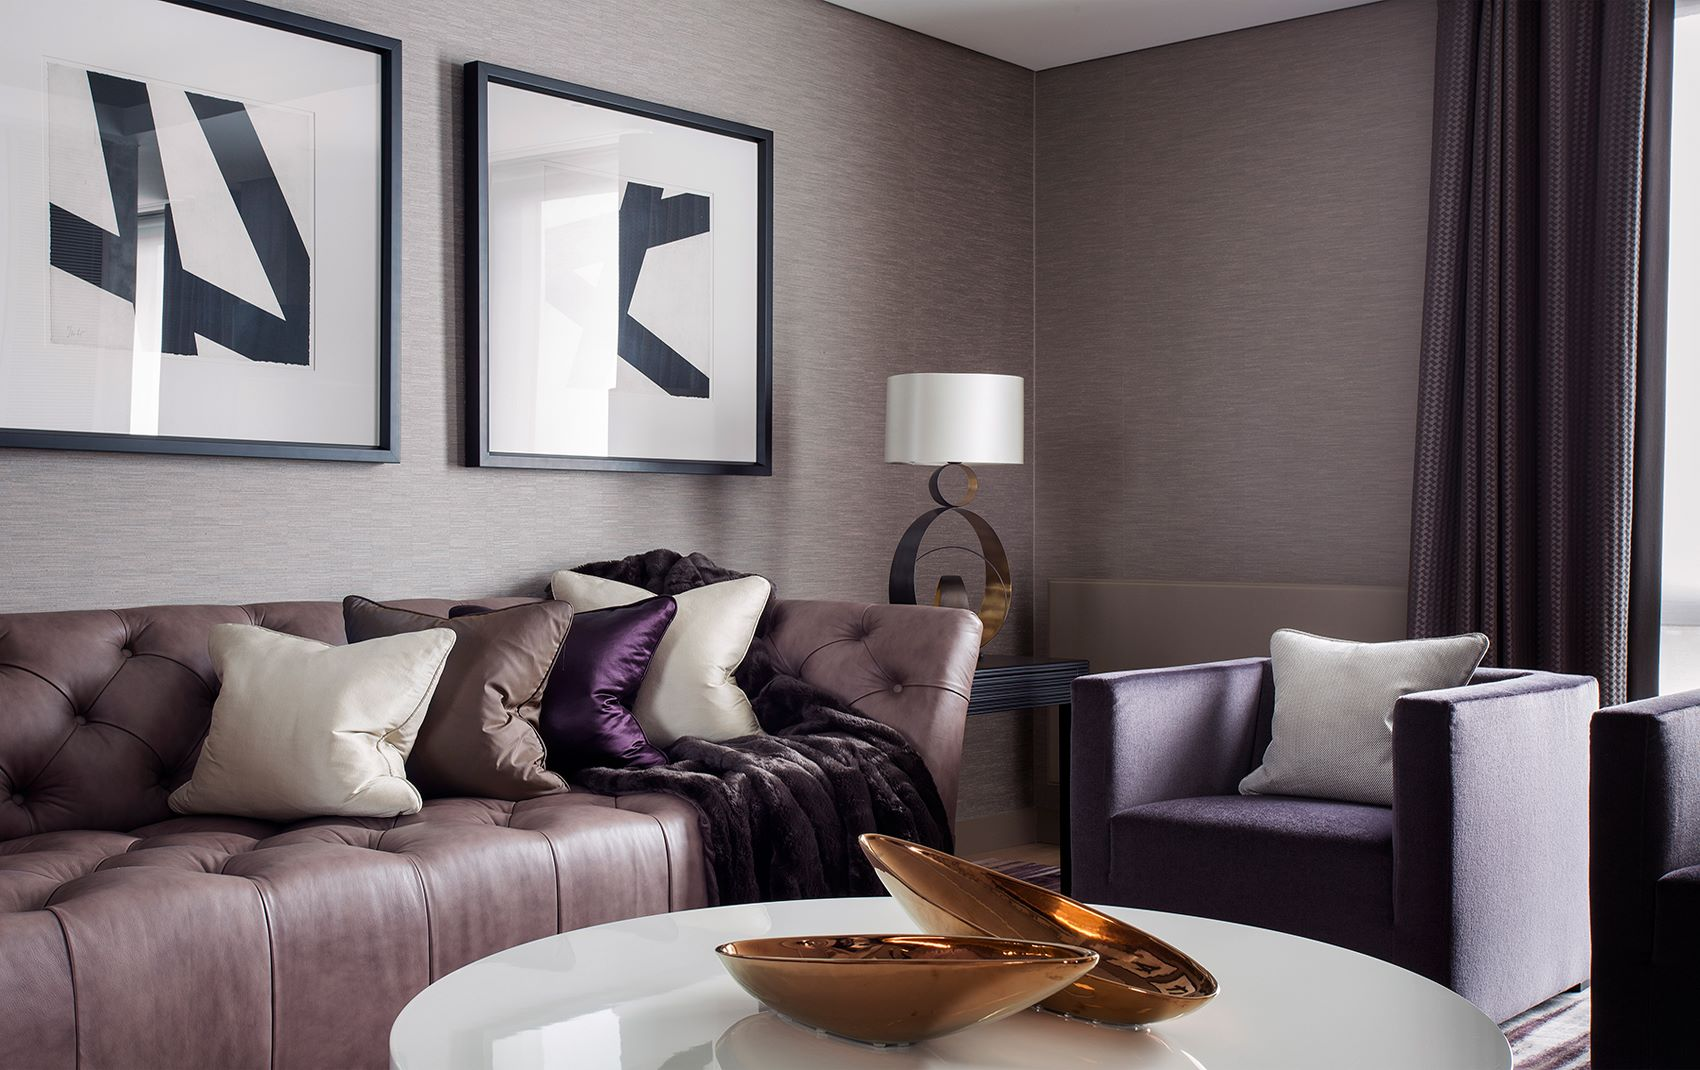 west london penthouse - purple living room accents